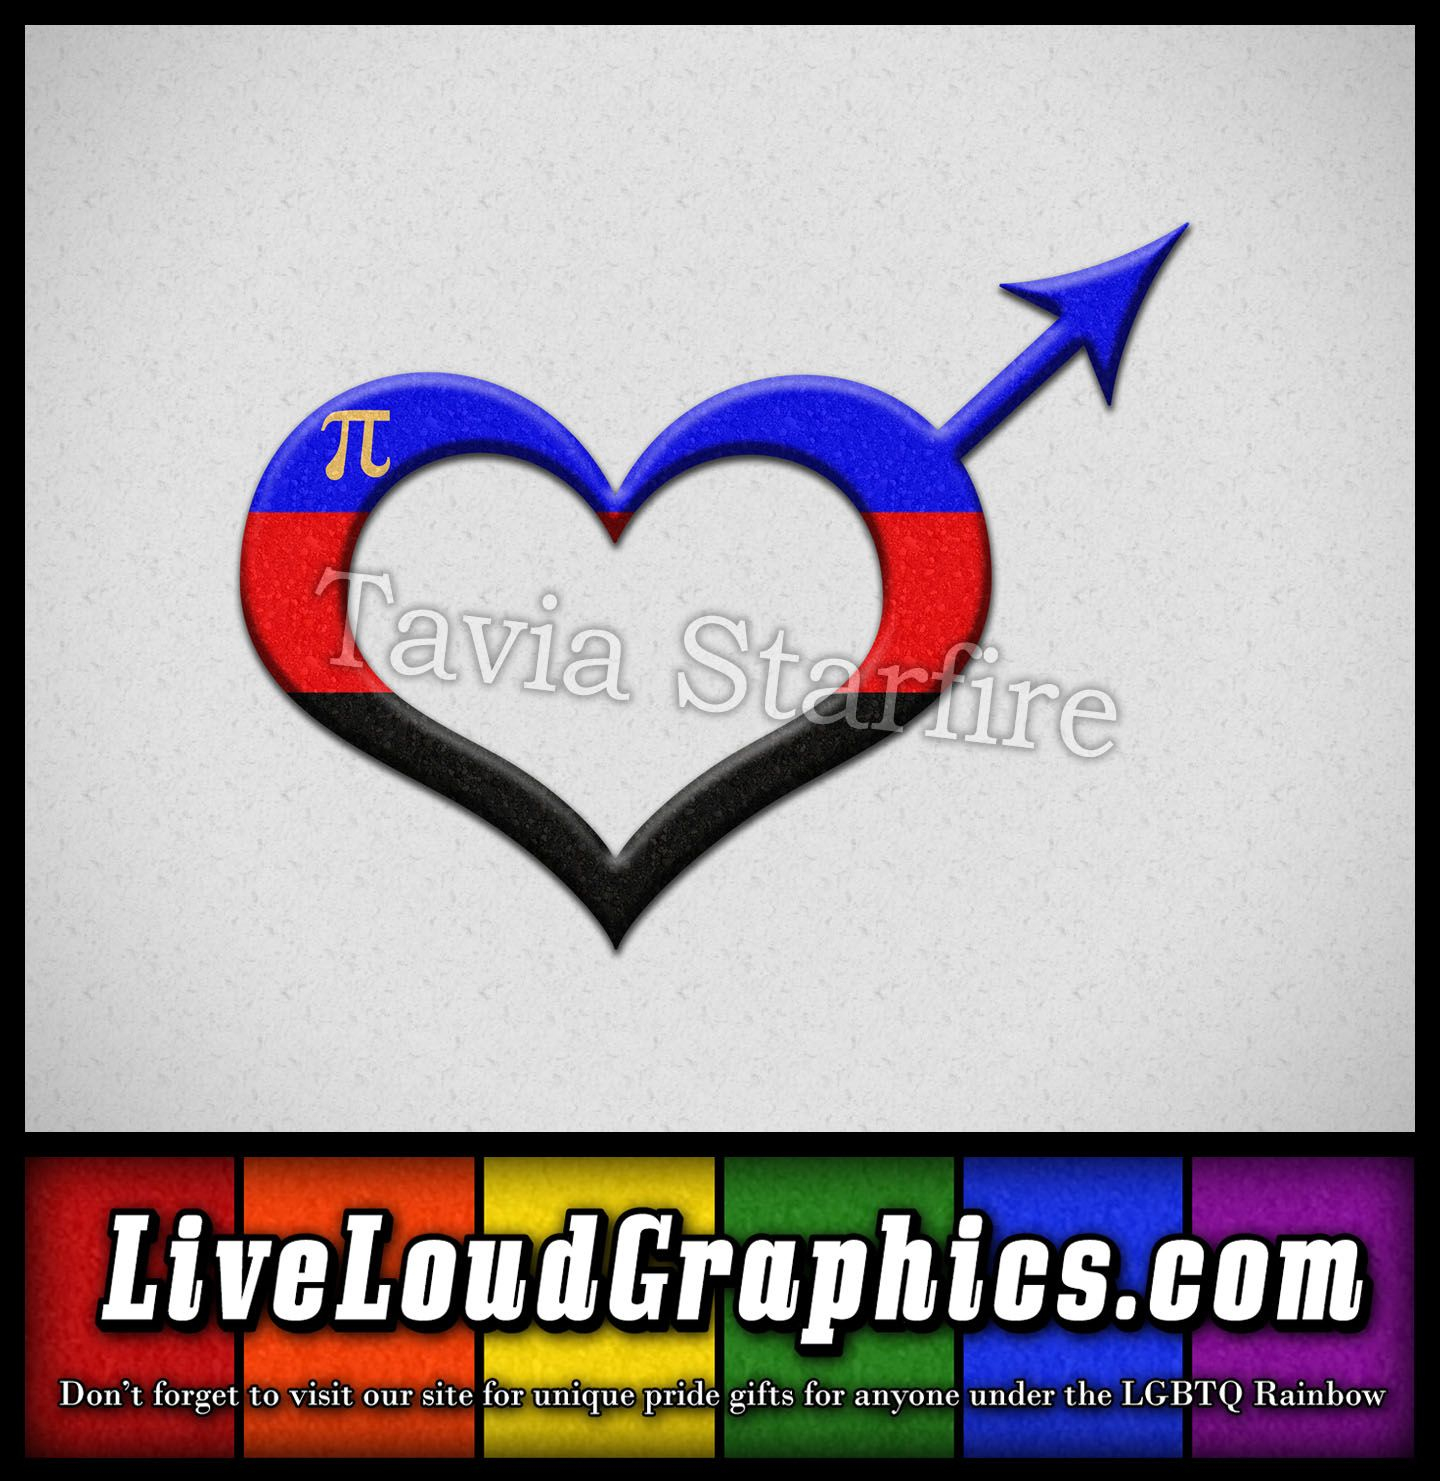 Polyamory Pride Heart Shaped Male Gender Symbol In Matching Pride